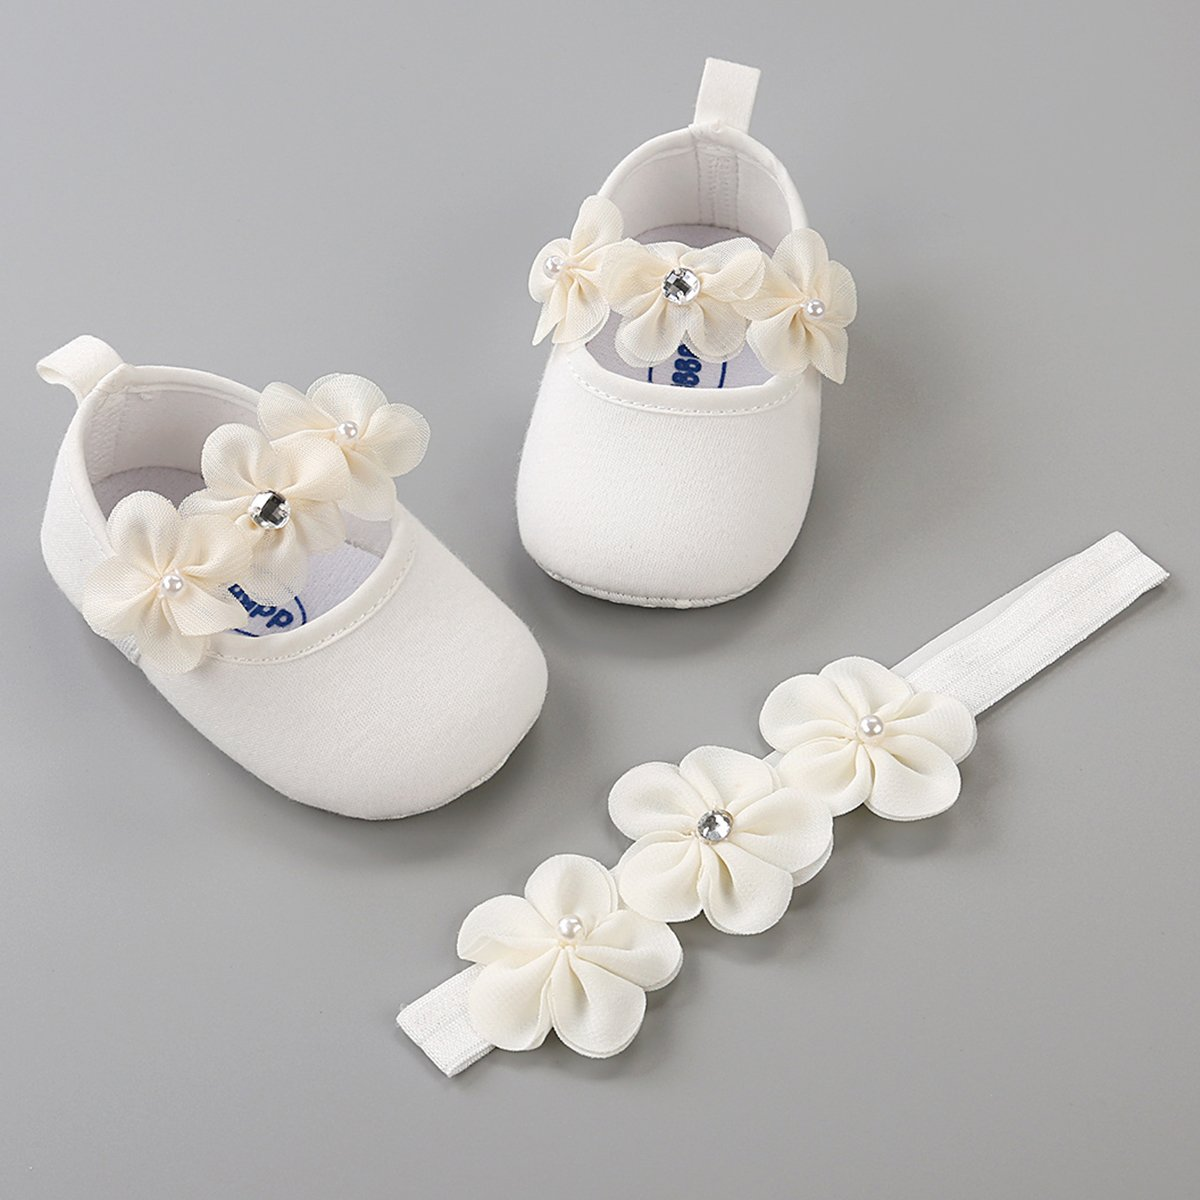 LIVEBOX Baby Infant Girls Shoes, Soft Sole Prewalker Mary Jane Princess Dress Crib Shoes with Free Baby Headband for Attend Wedding Birthday Party Events (White, S) by LIVEBOX (Image #3)